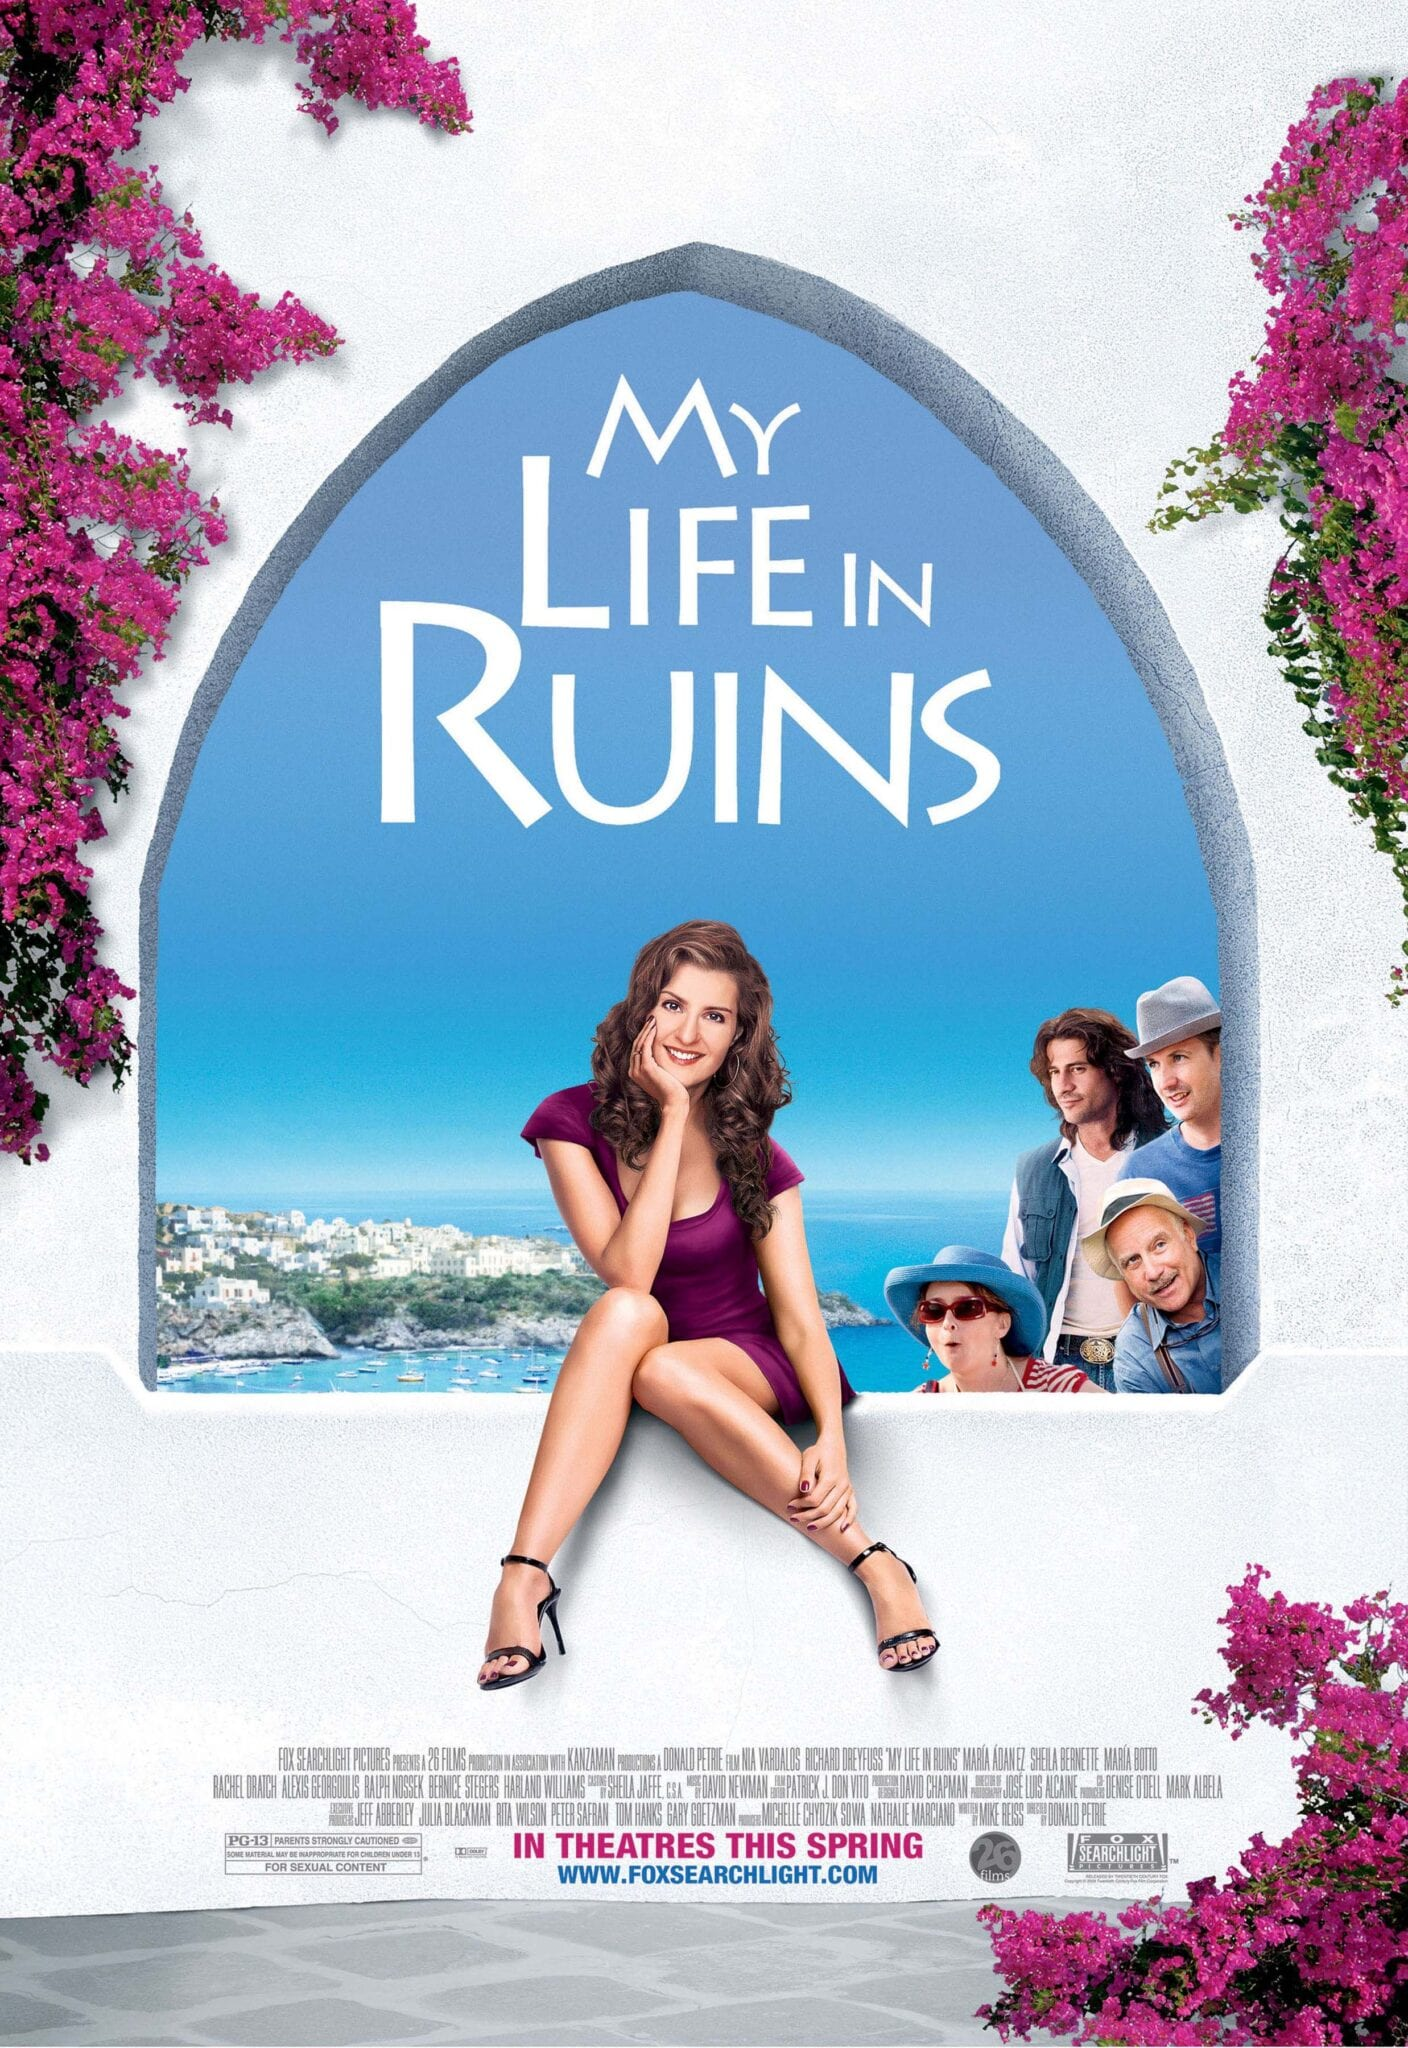 My Life in Ruins - Le mie grosse grasse vacanze greche